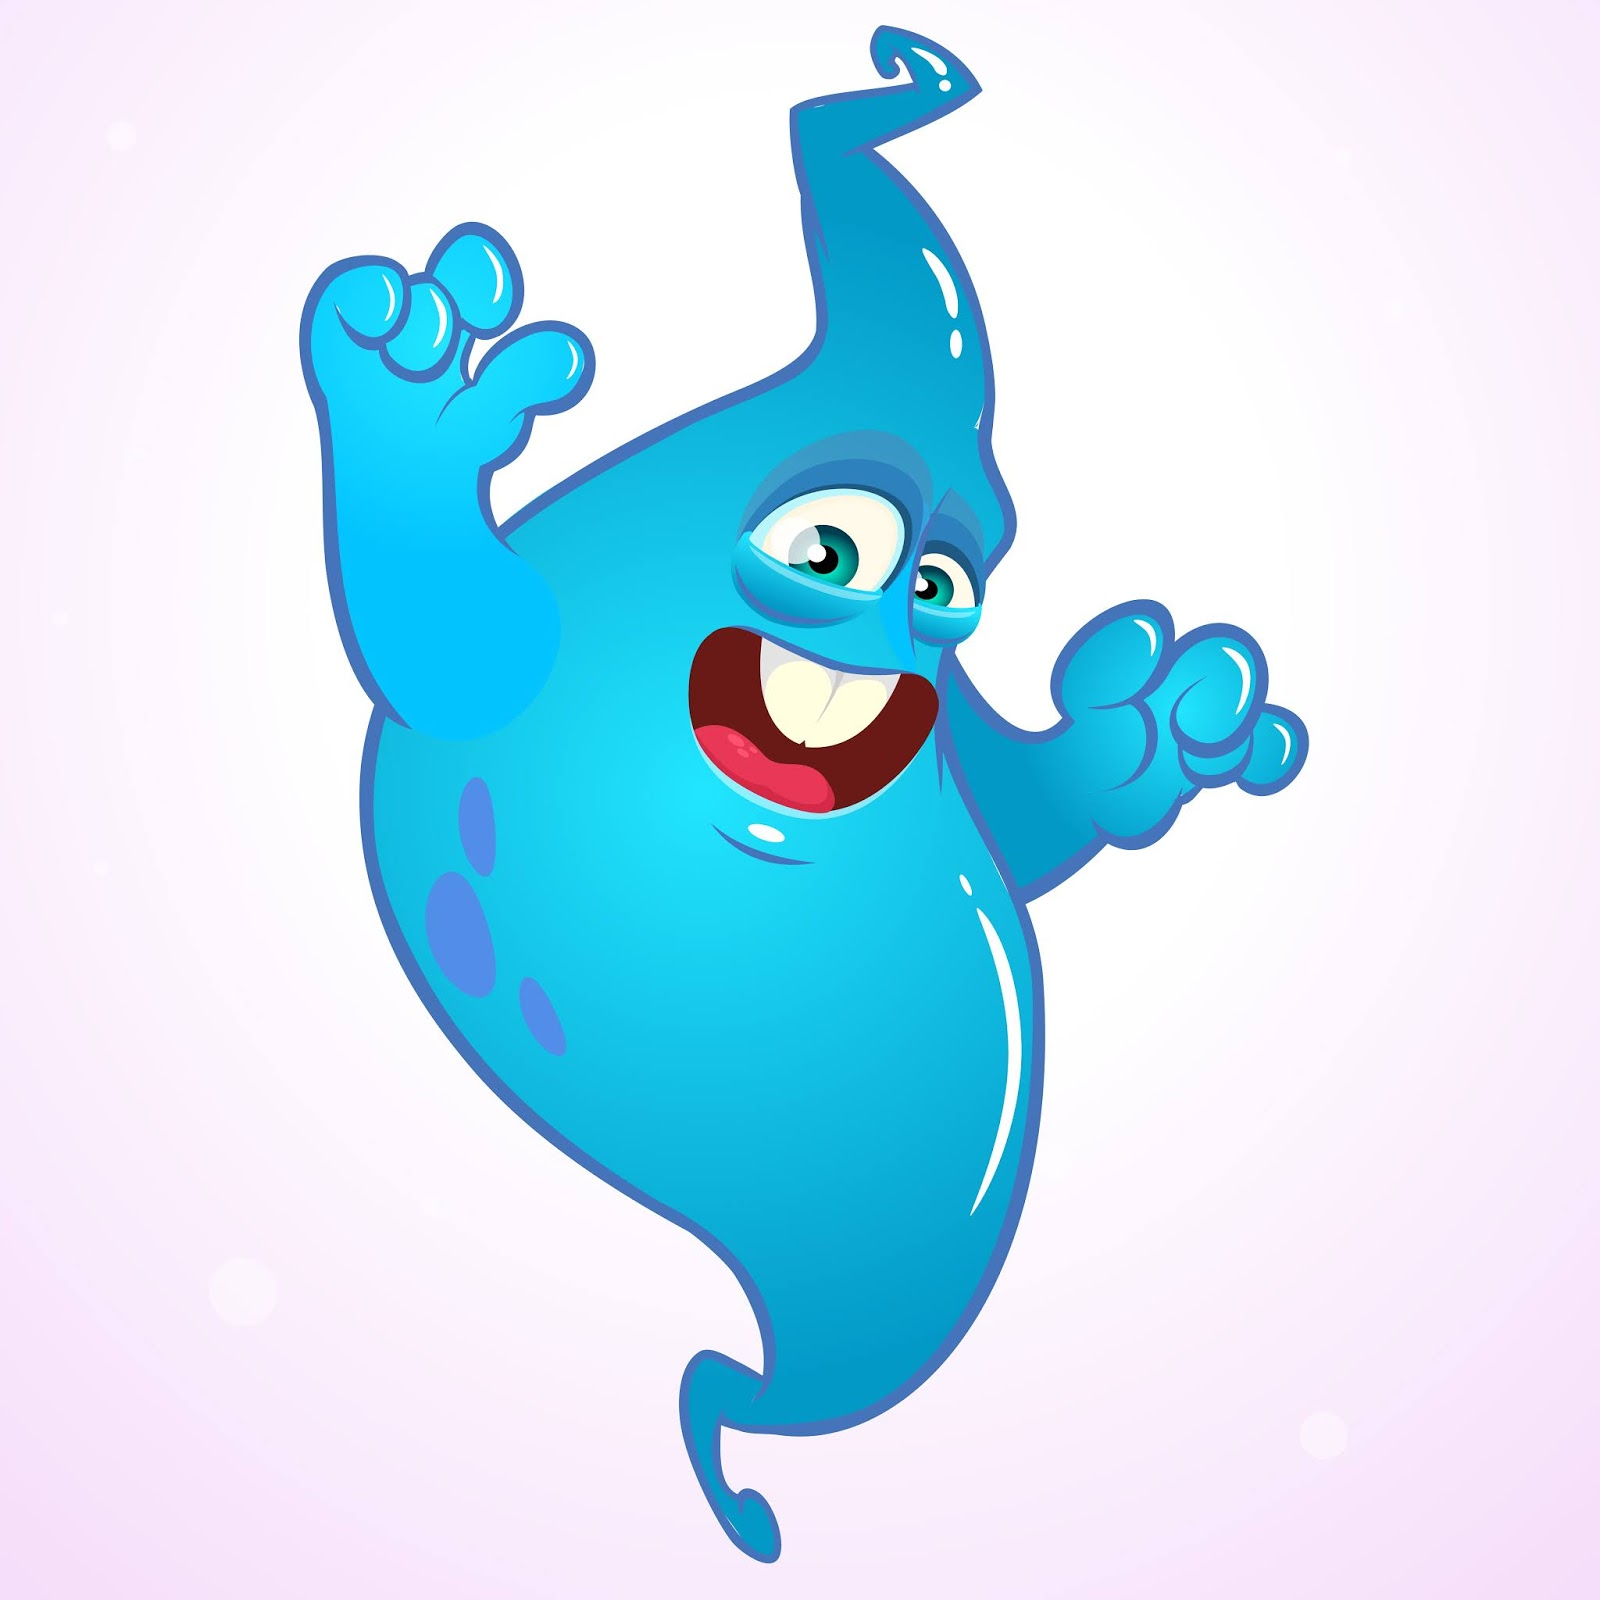 Cartoon Funny Ghost Illustration Funny Free Download Vector CDR, AI, EPS and PNG Formats